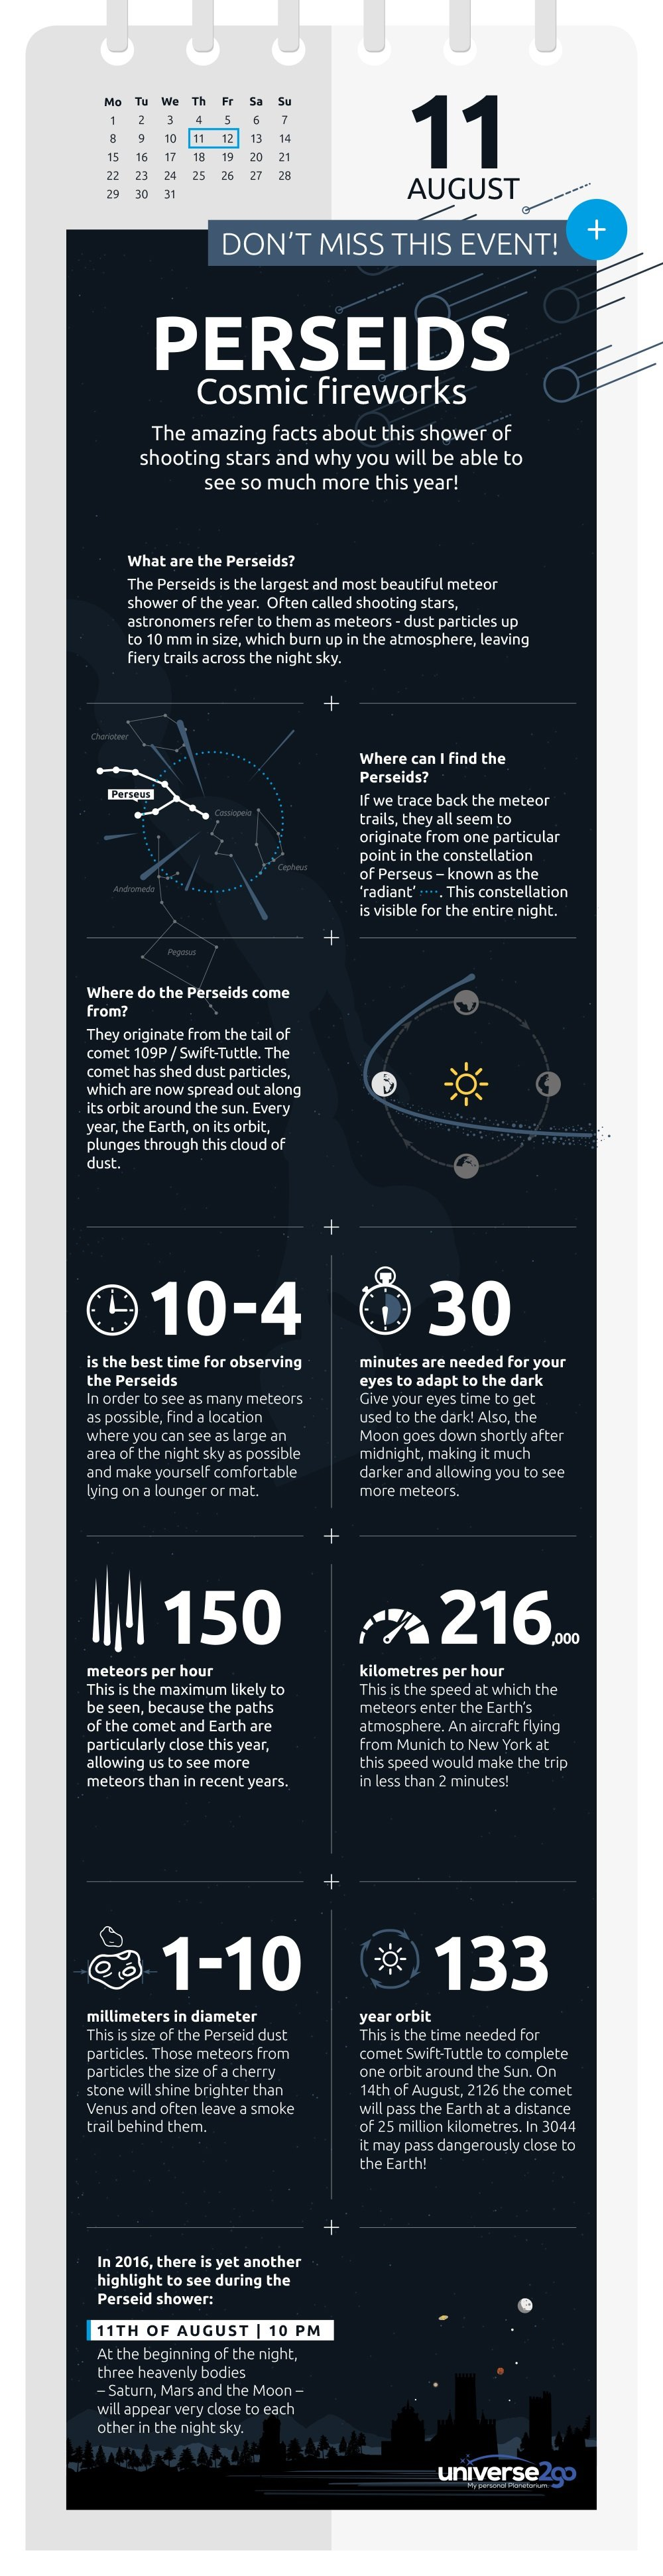 u2g-infographic-perseid